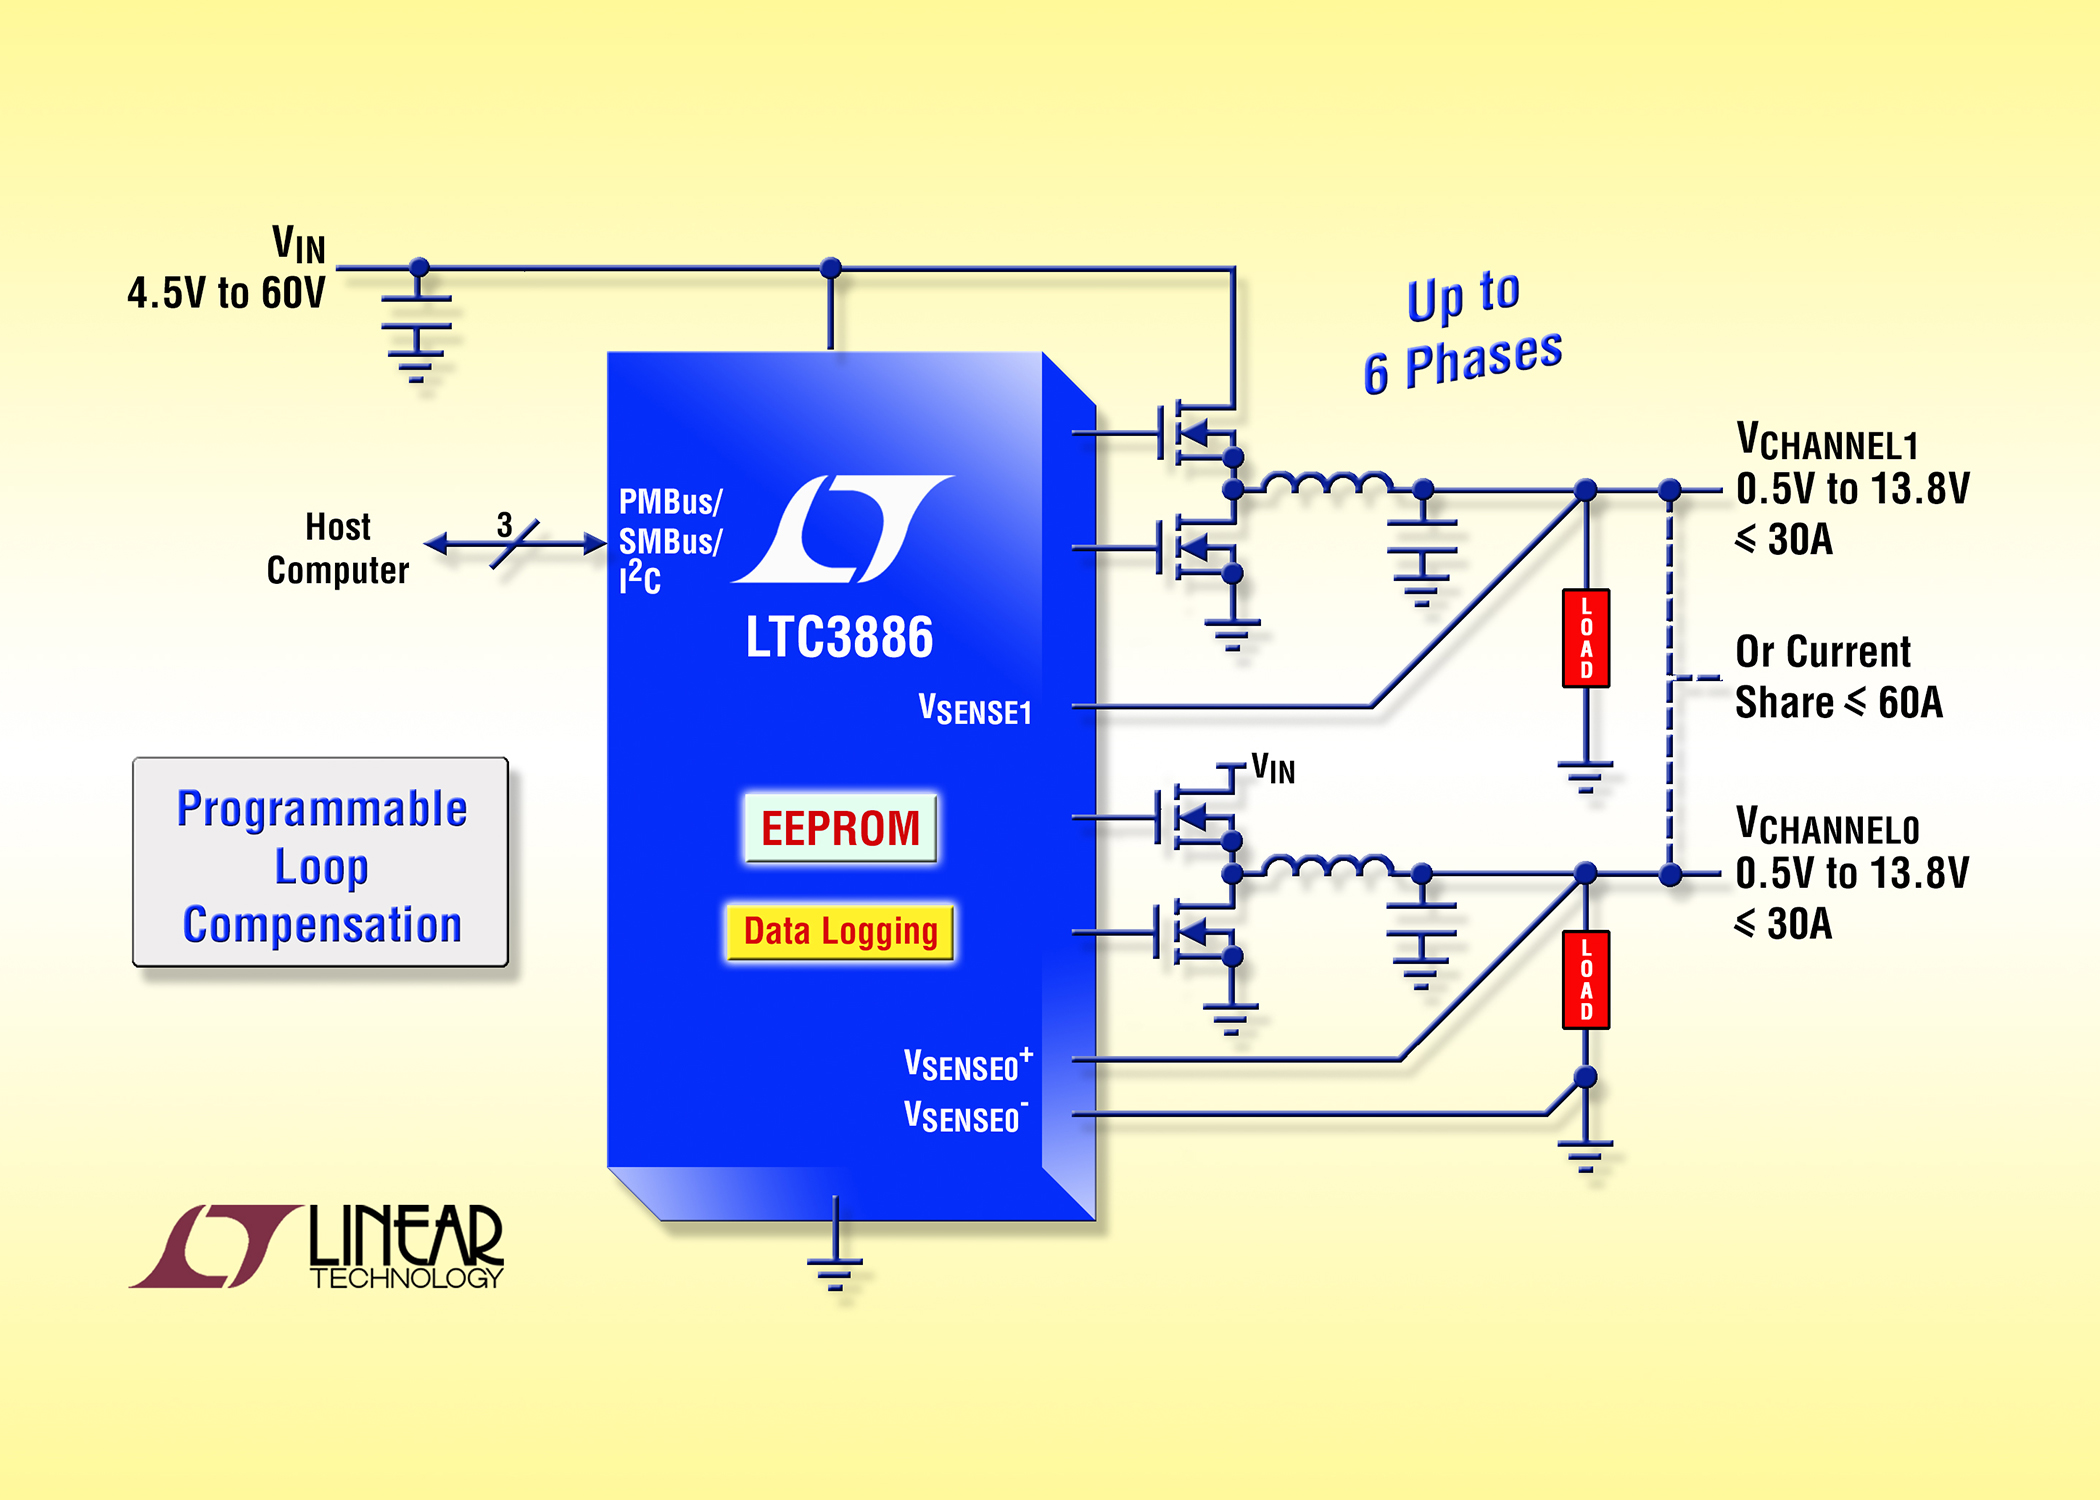 60V Dual DC/DC controller with I2C/PMBus digital control and